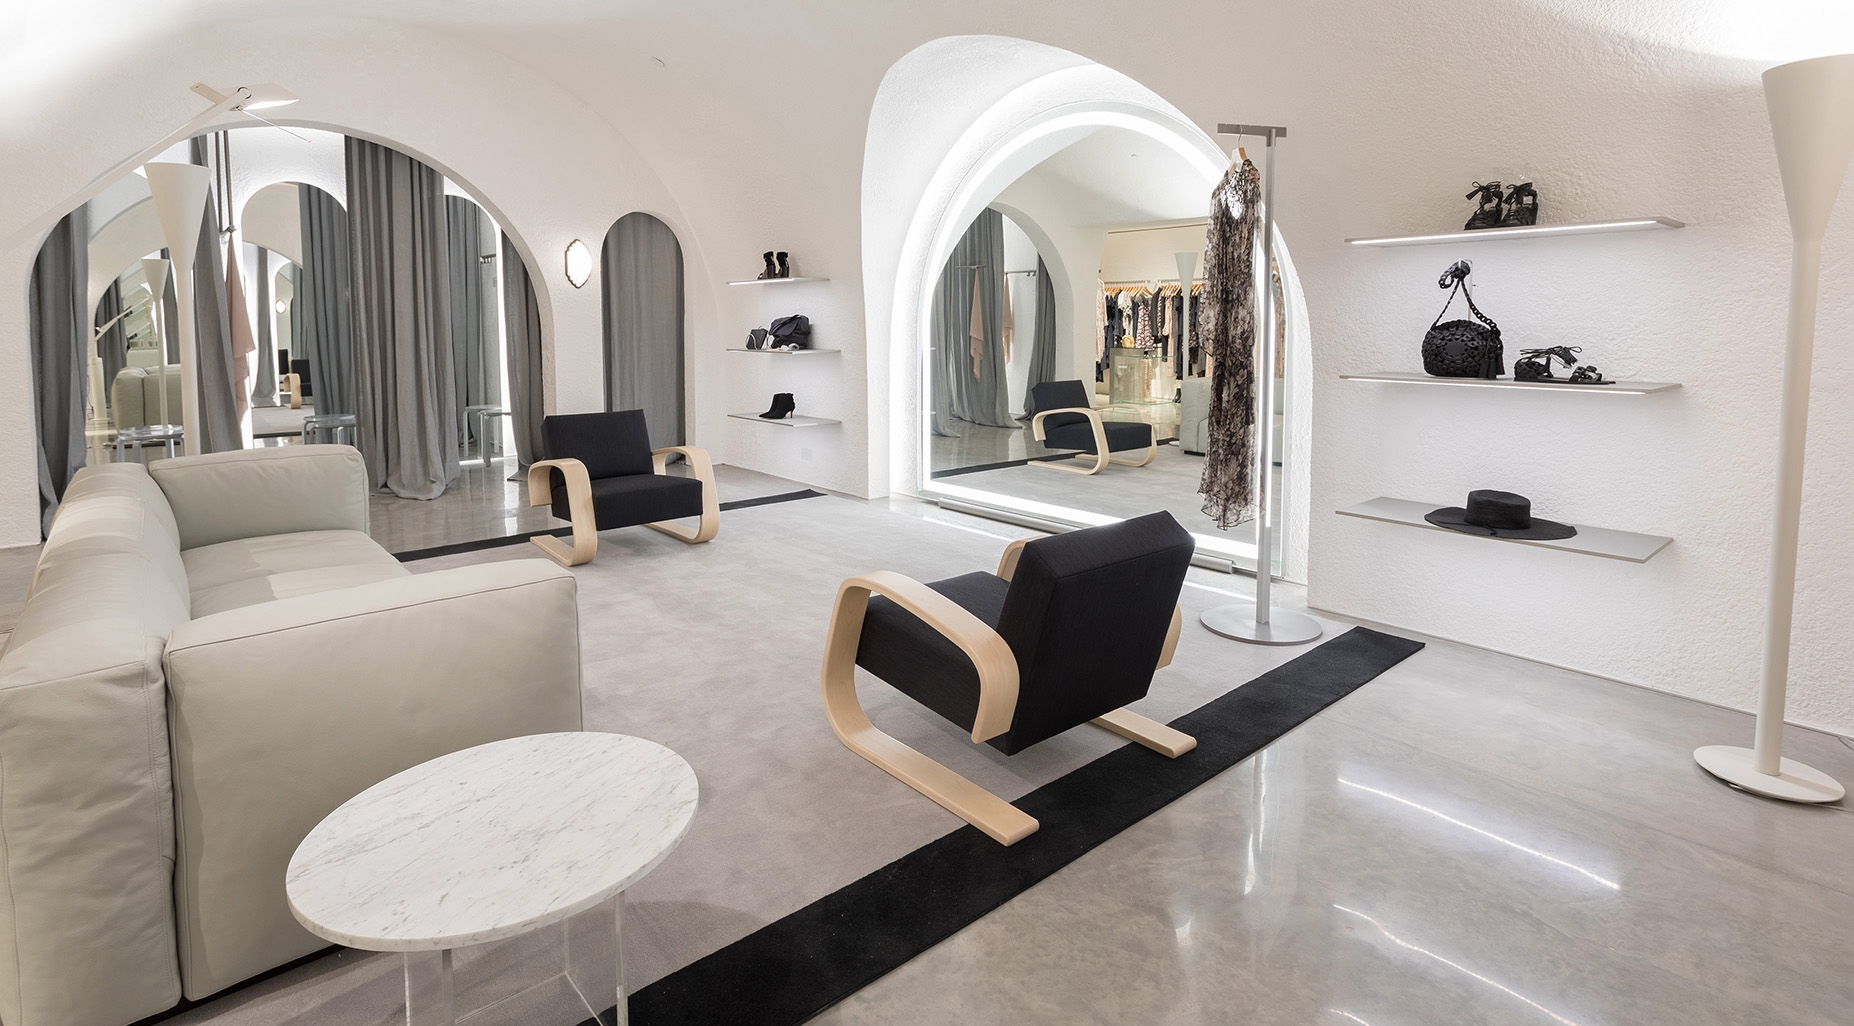 An informal lounge room to the fitting rooms featuring an Italian leather couch and modern chairs